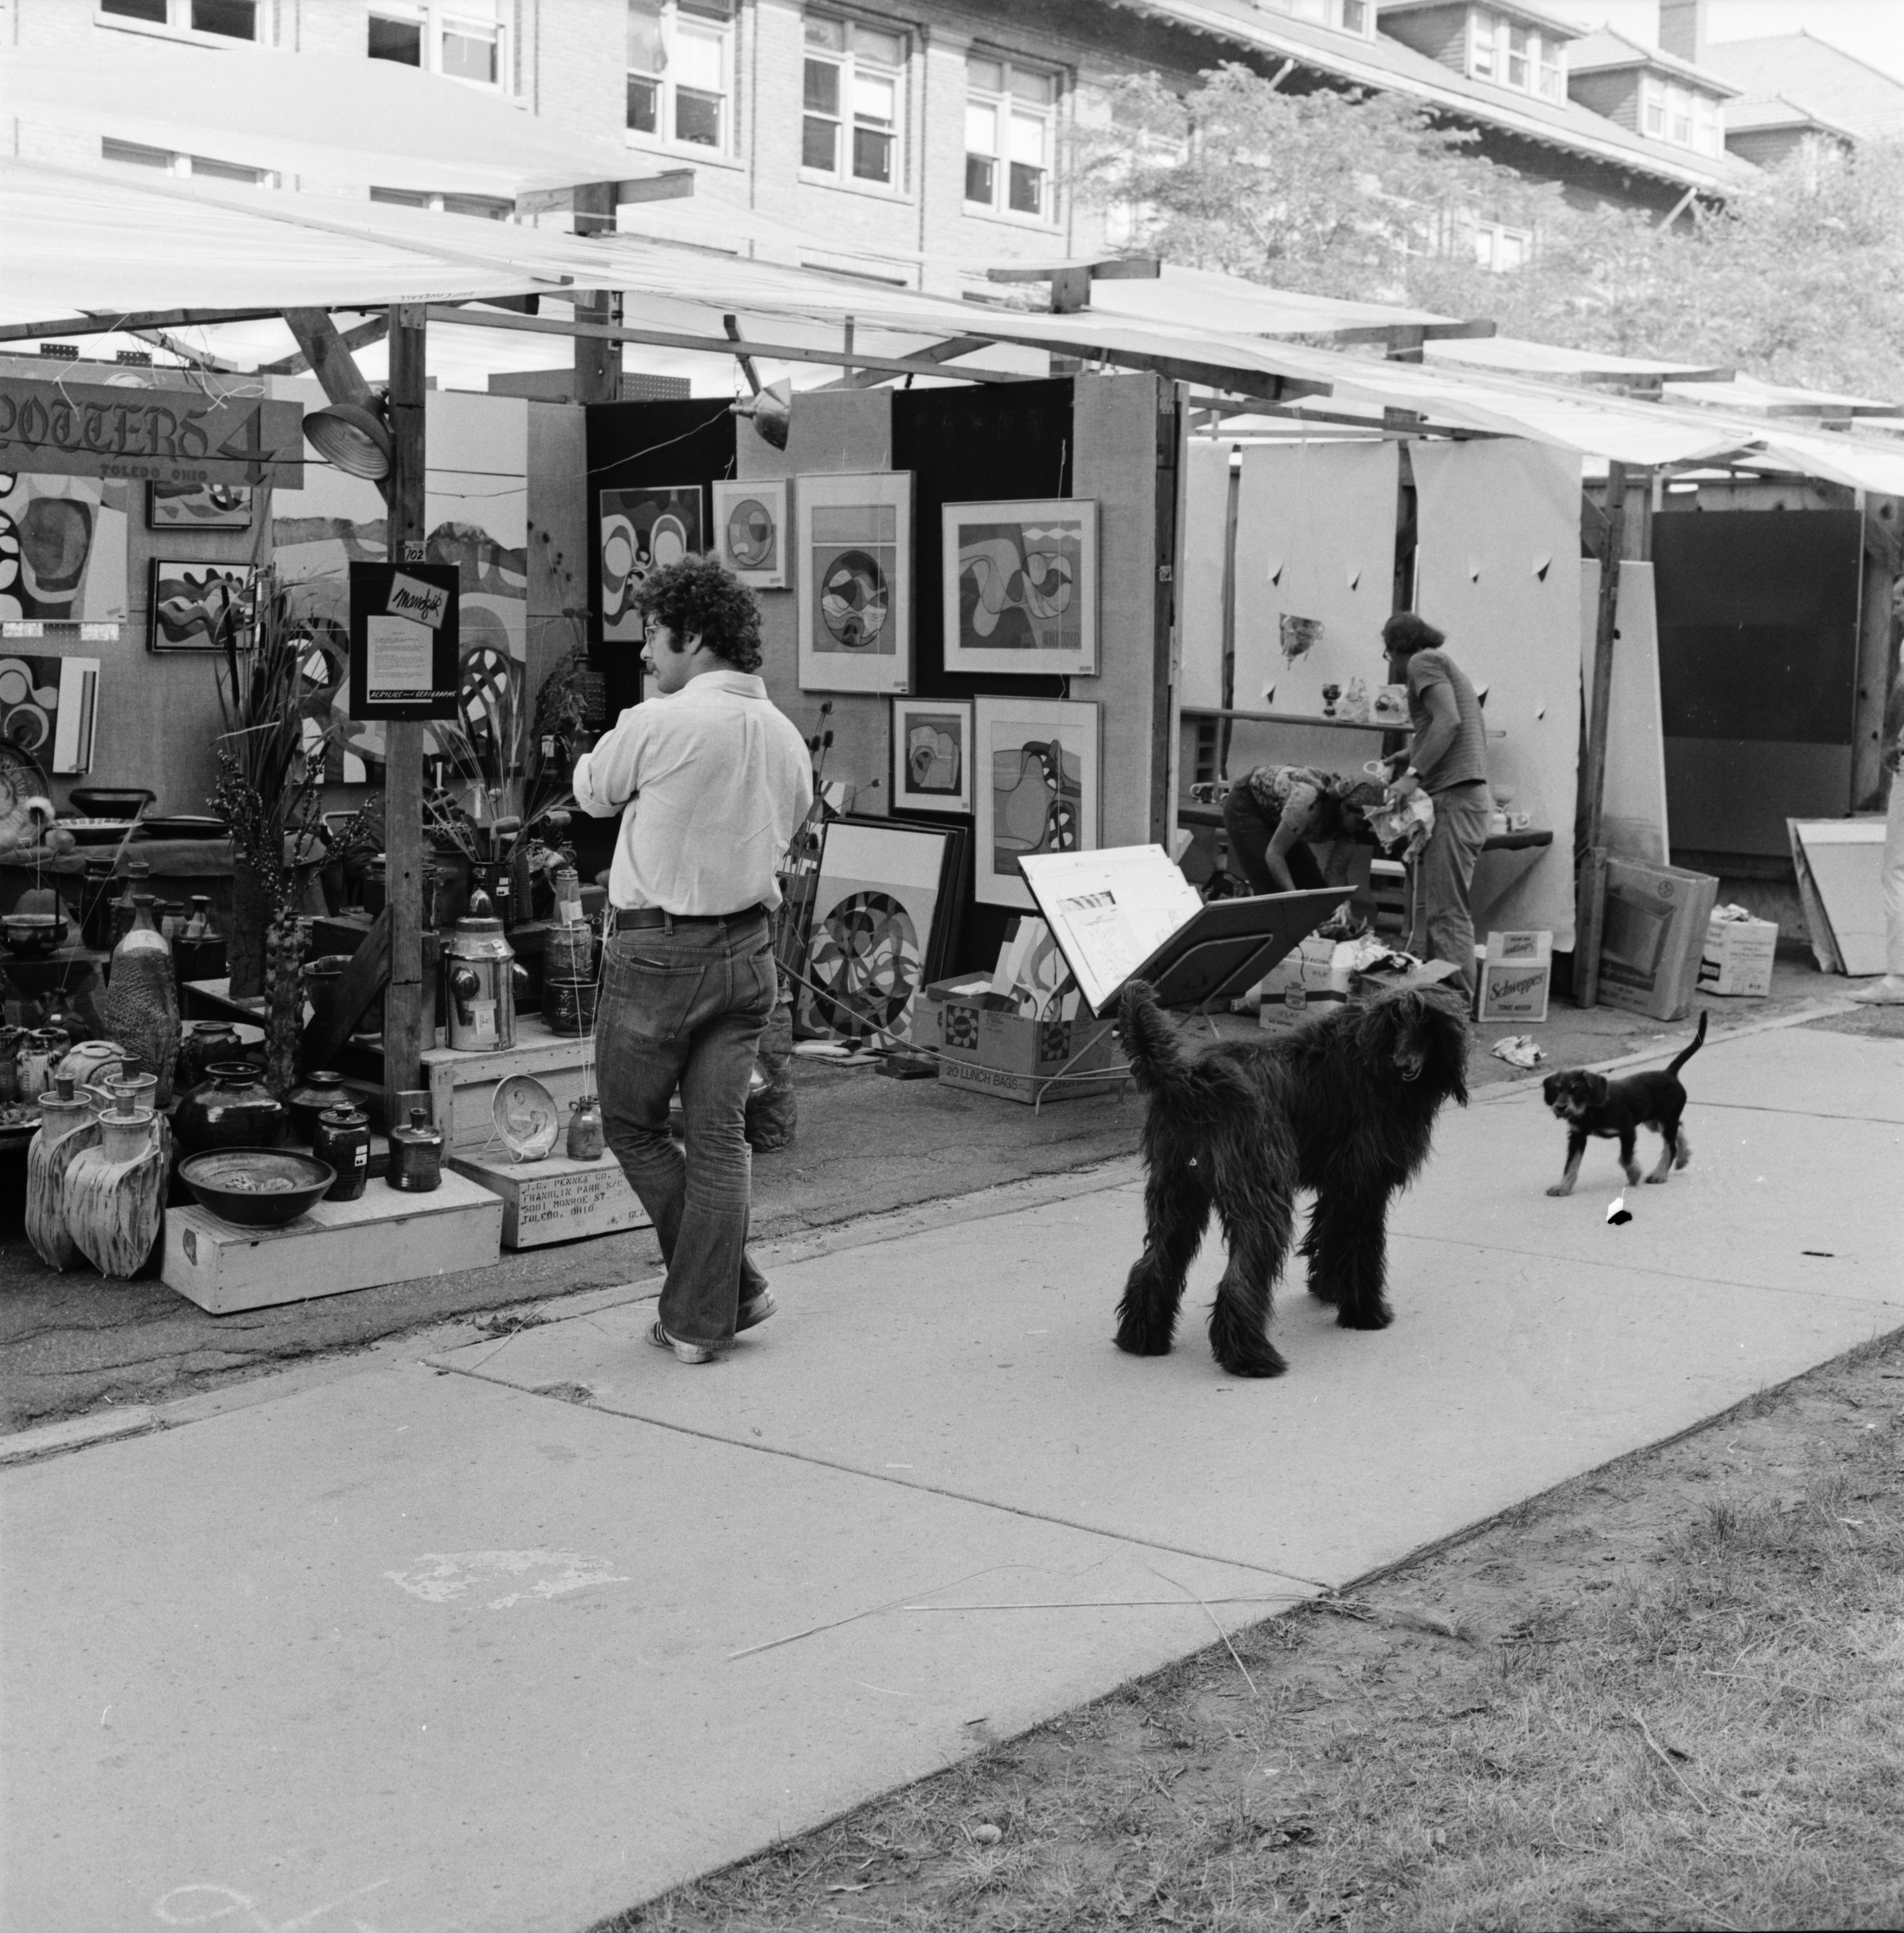 Dogs at the Ann Arbor Street Art Fair, July 1971 image